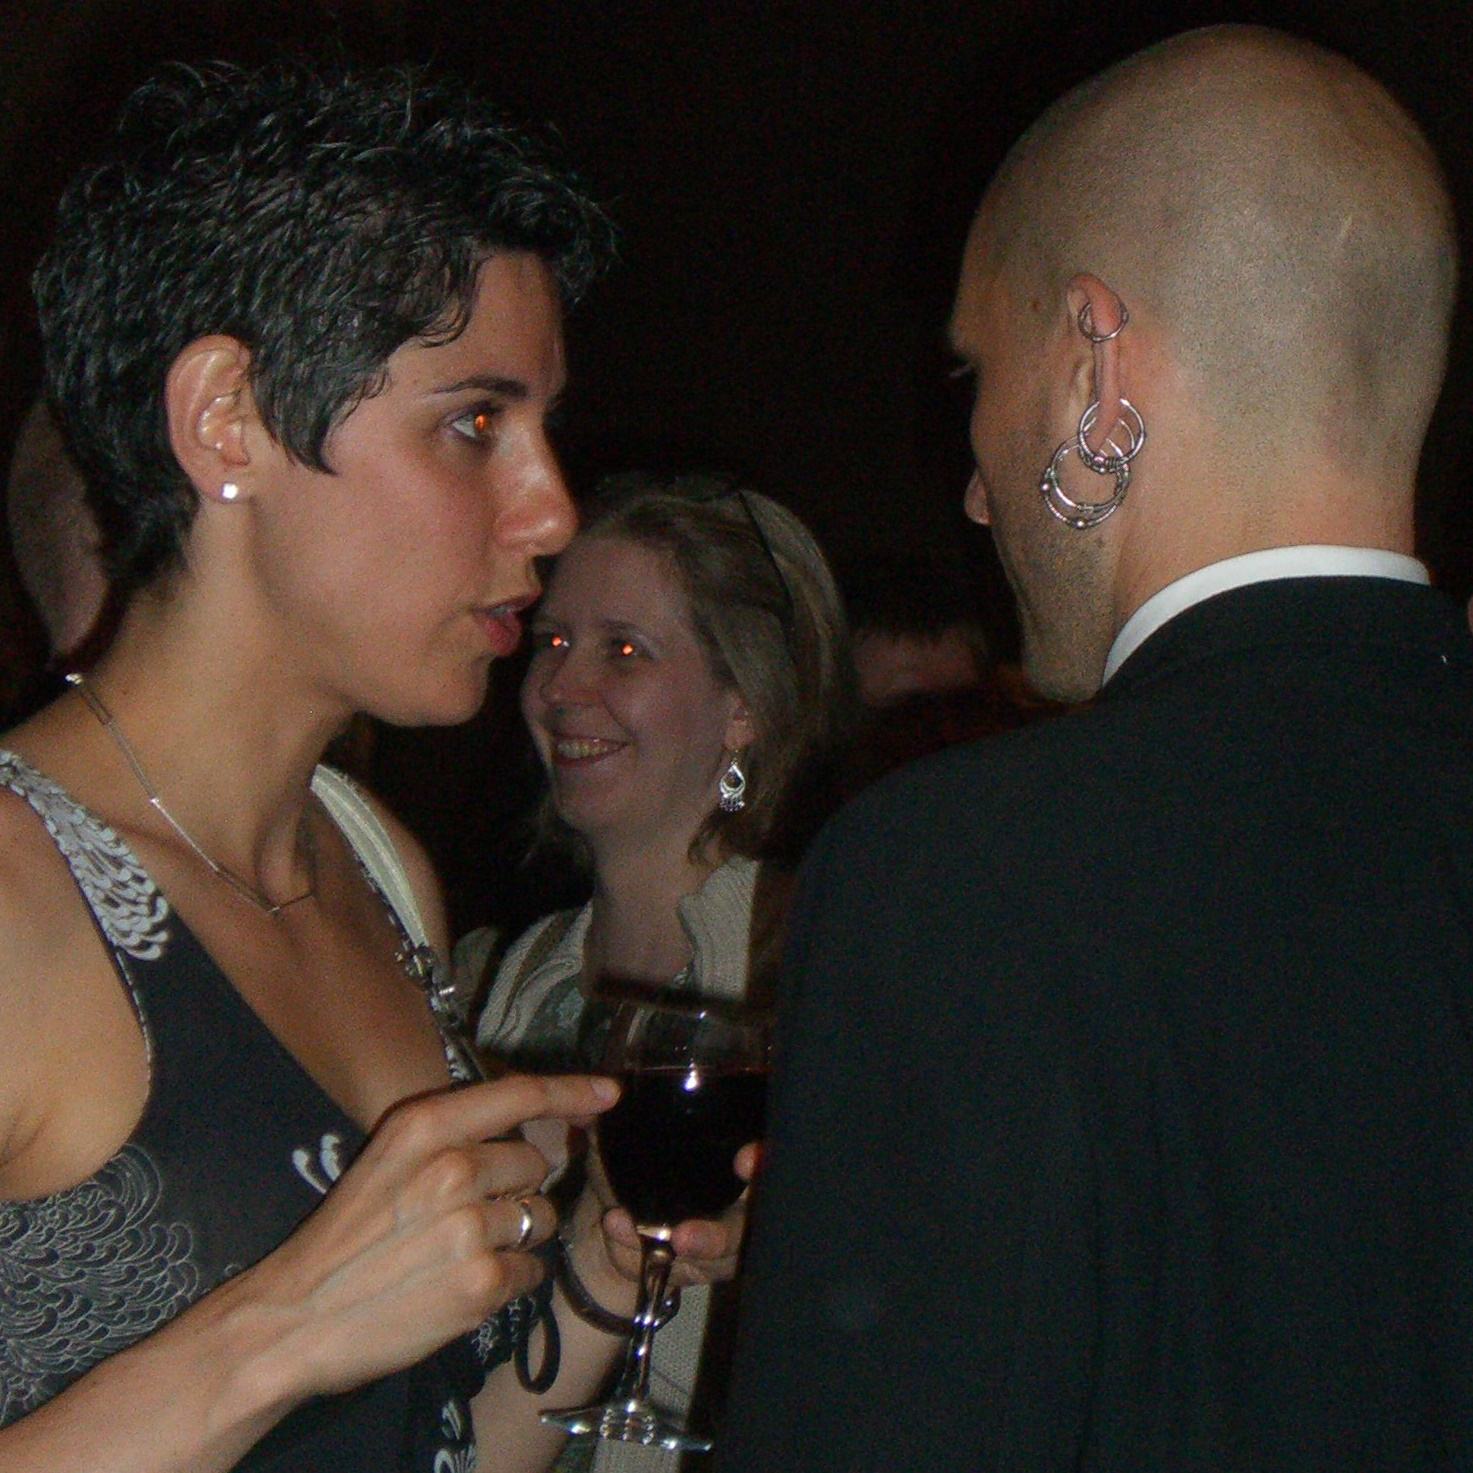 Jessie (left) and China Mieville's earrings at Readercon 2006